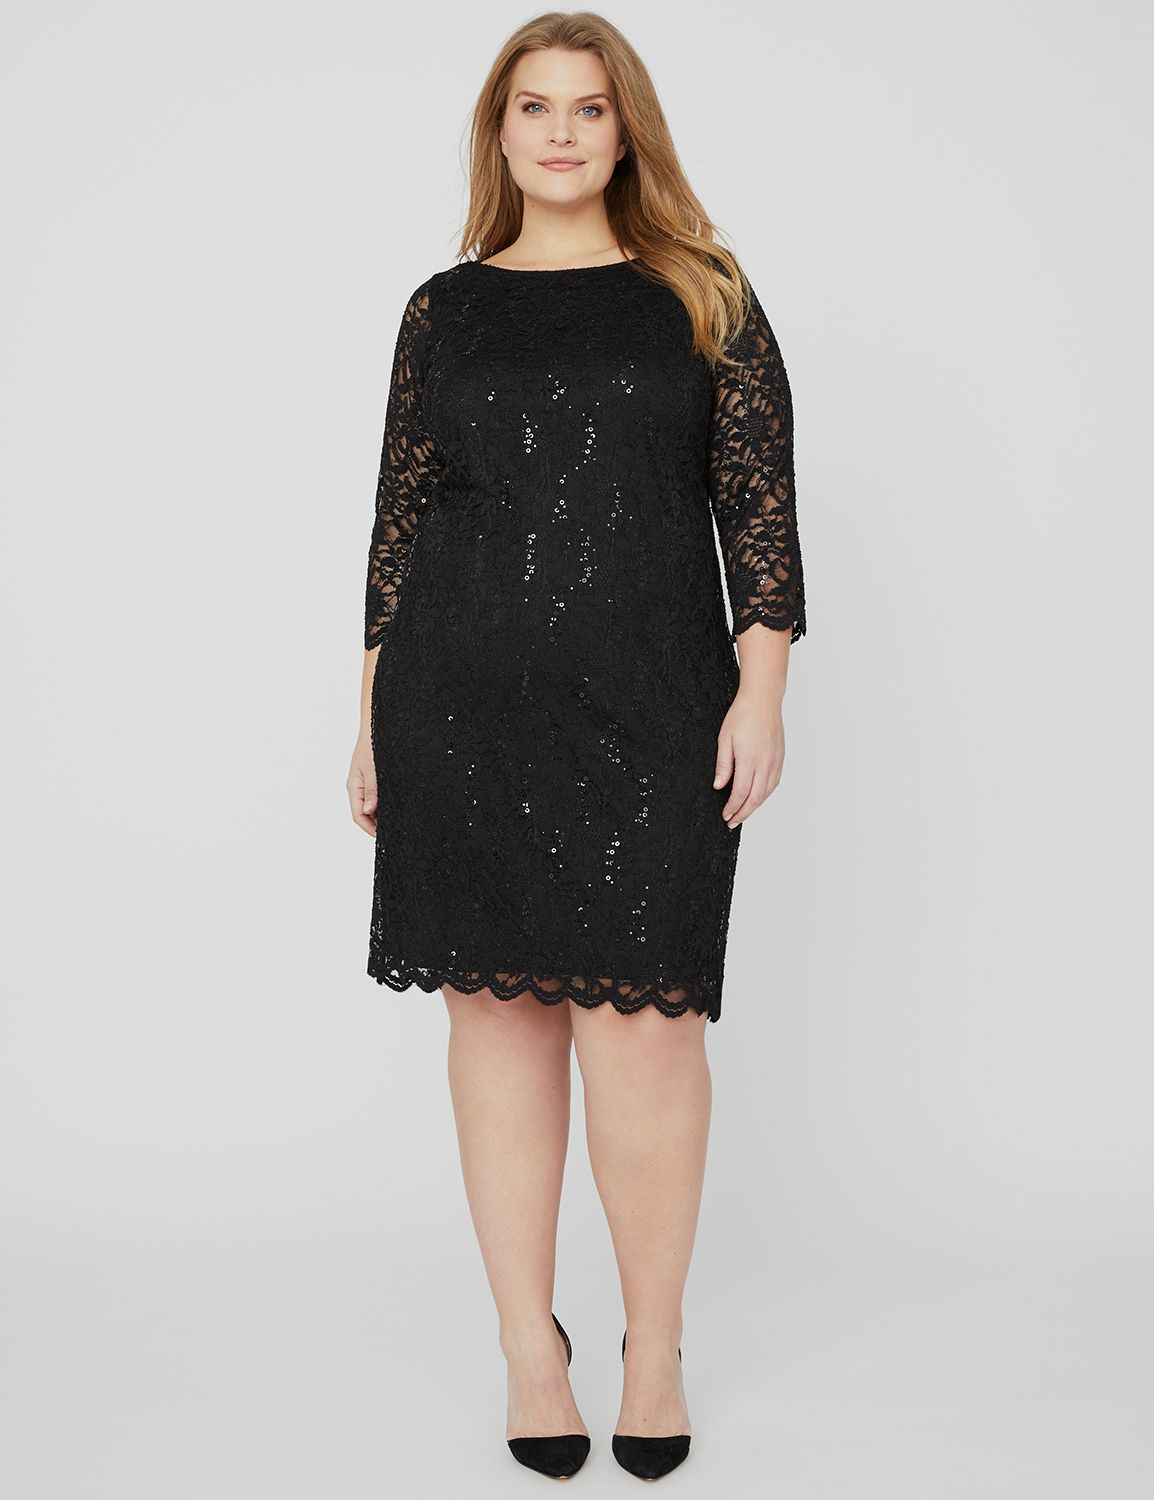 Sequin Lace Shift Dress 1093614 Lace Shift - #88922 MP-300107346